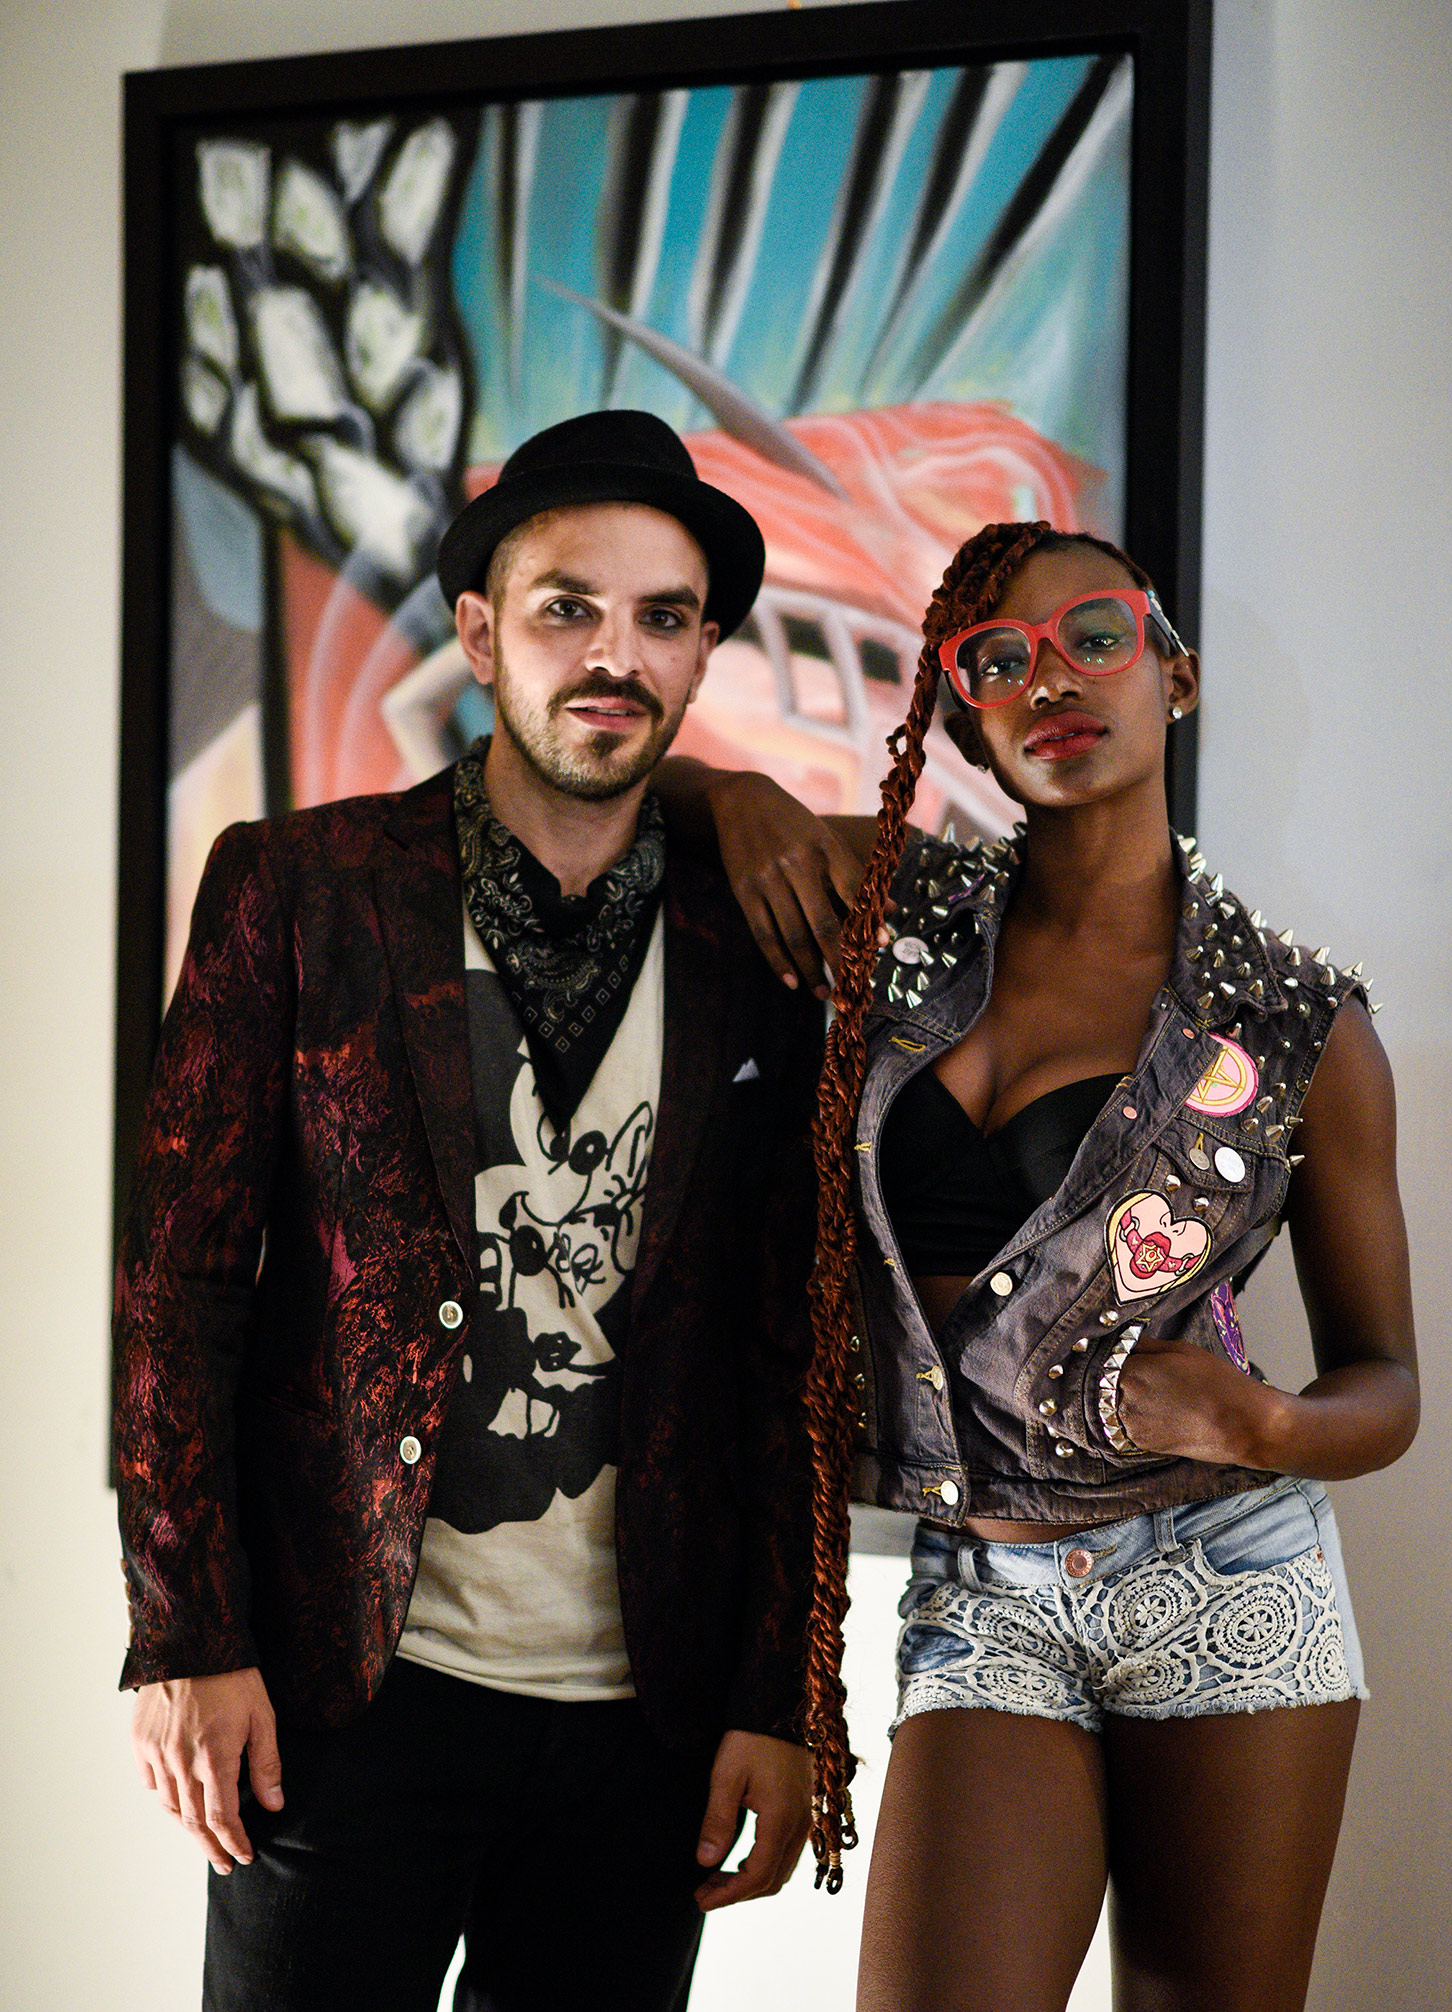 Orgullo Artist's Reception for Aquiles Avalos   (from L to R: Panther and Iyanna James)